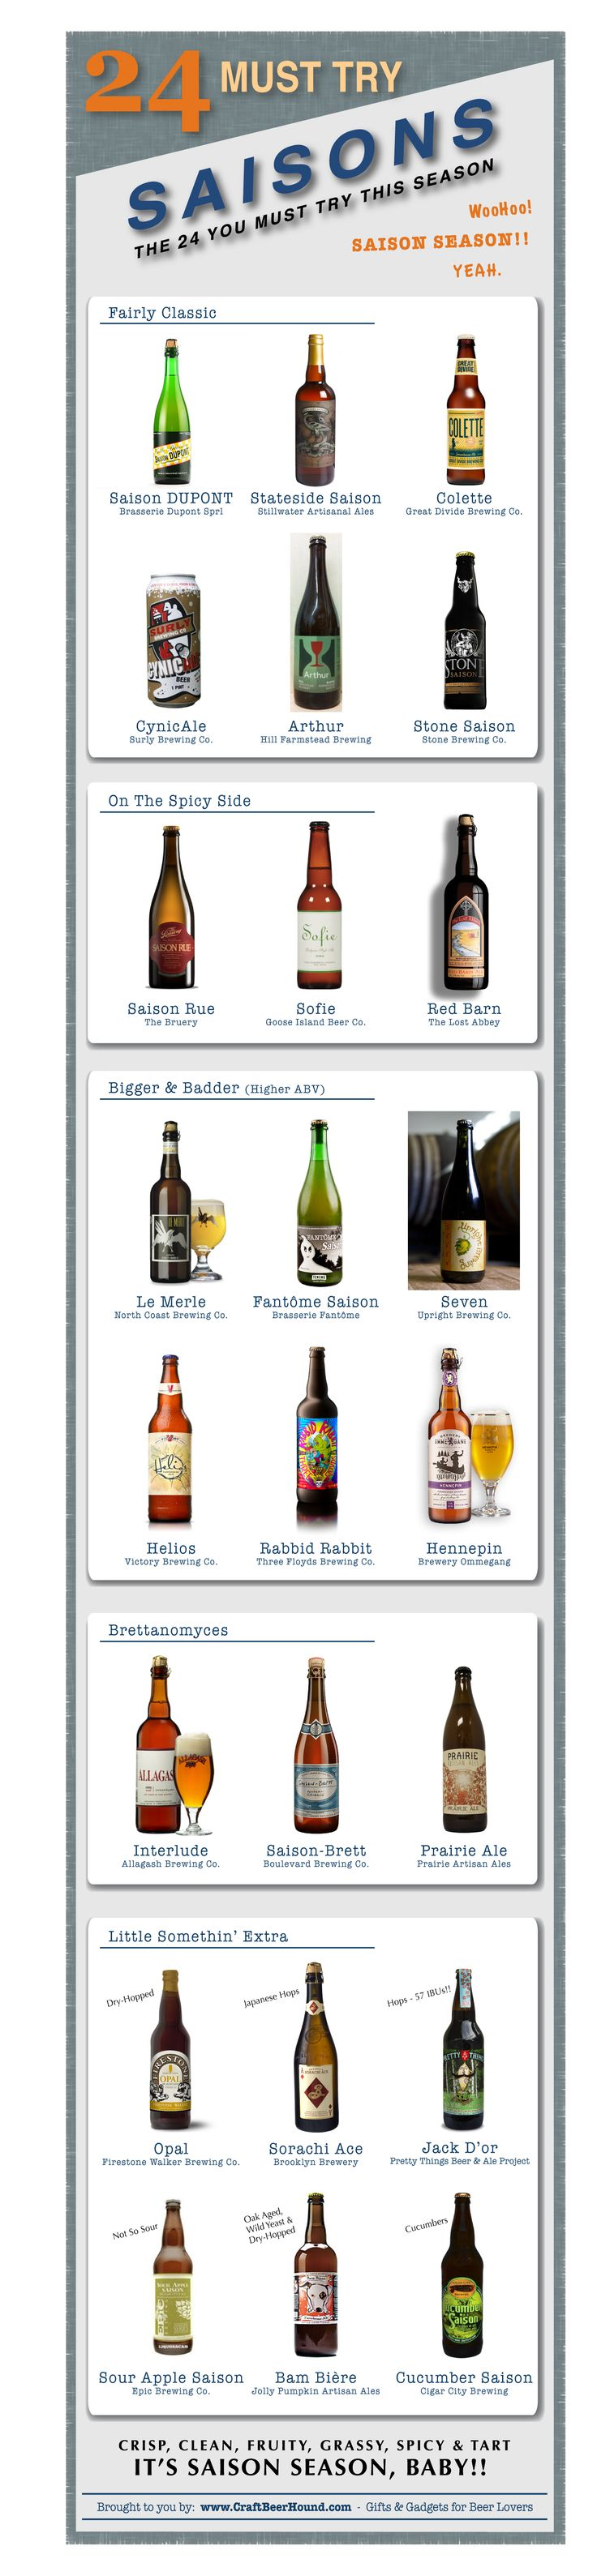 Here are the 24 Best Saisons you MUST try this year!